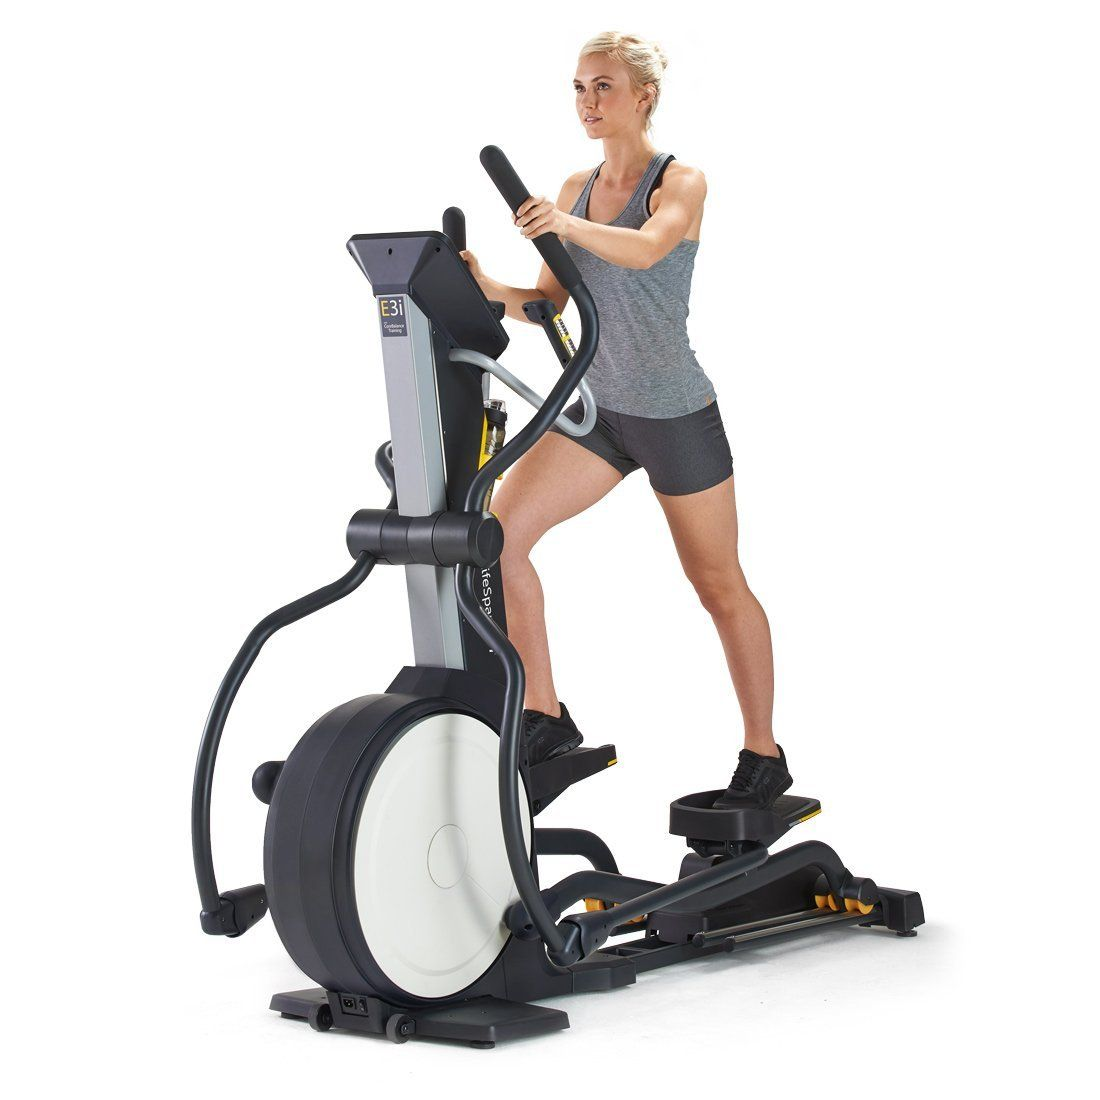 The Best Selling Elliptical Trainers With Images Elliptical